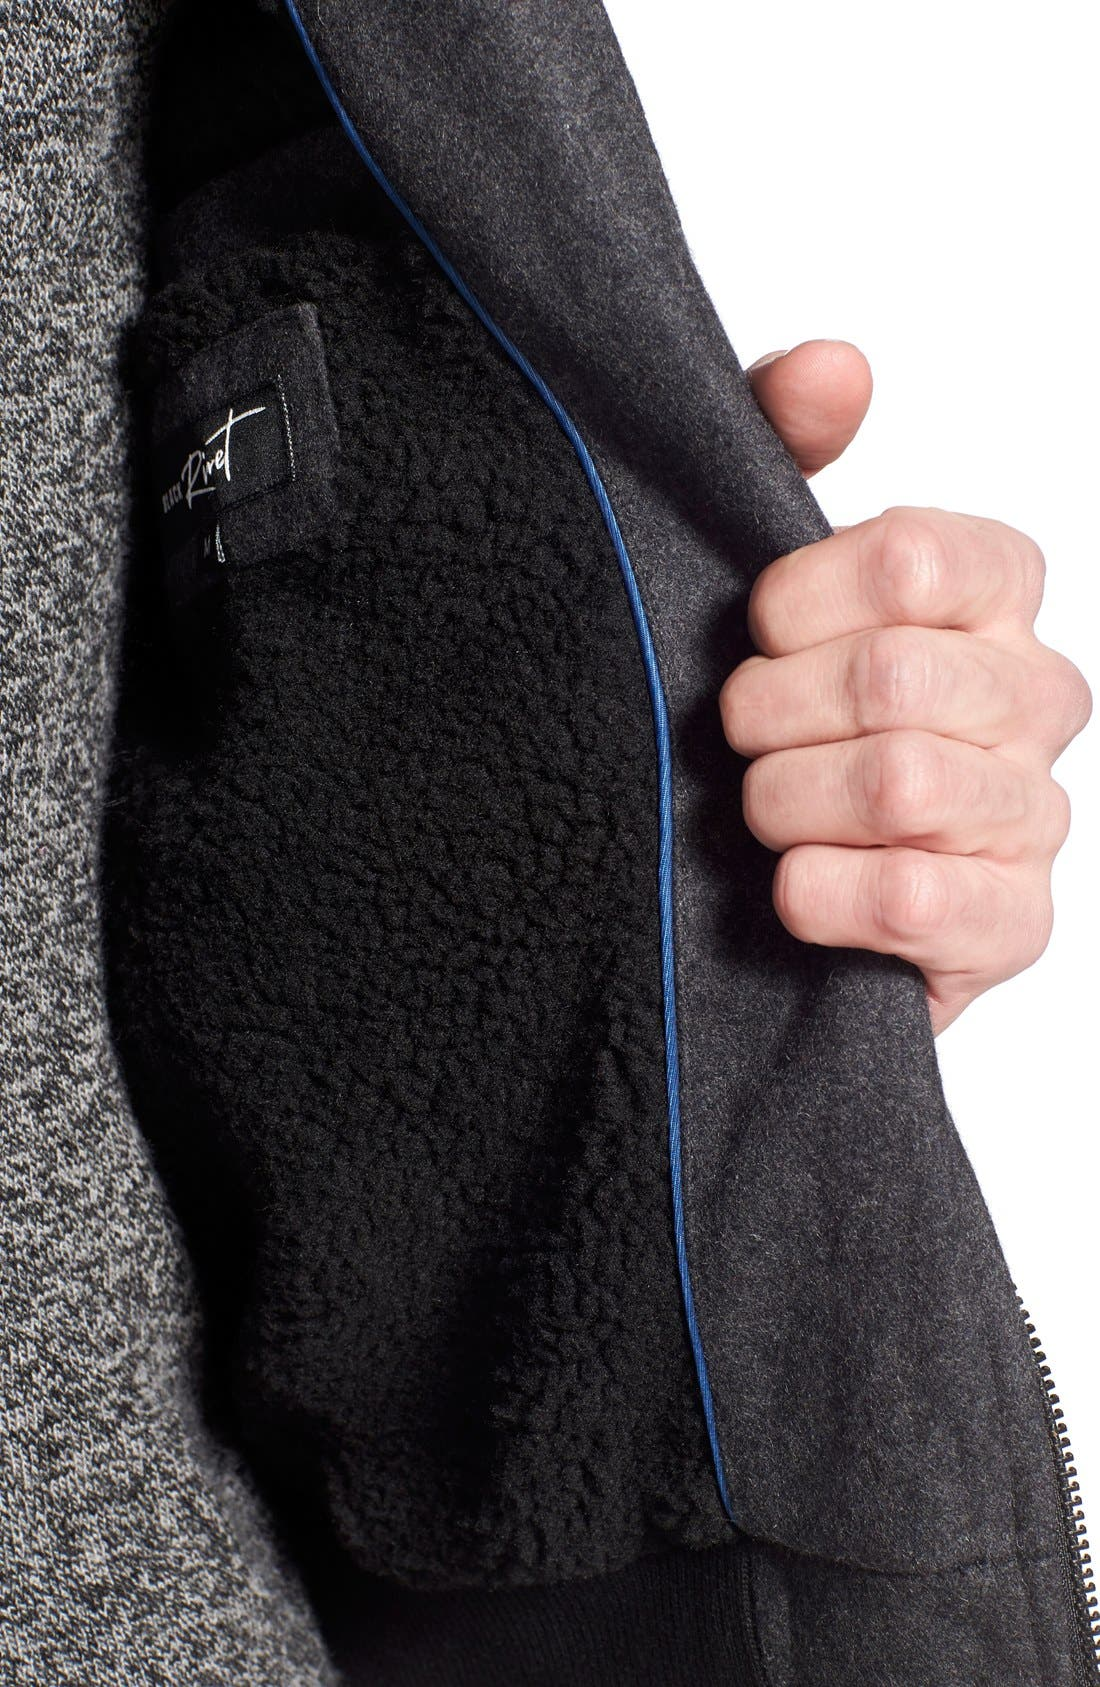 Wool Blend Bomber Jacket,                             Alternate thumbnail 4, color,                             Charcoal